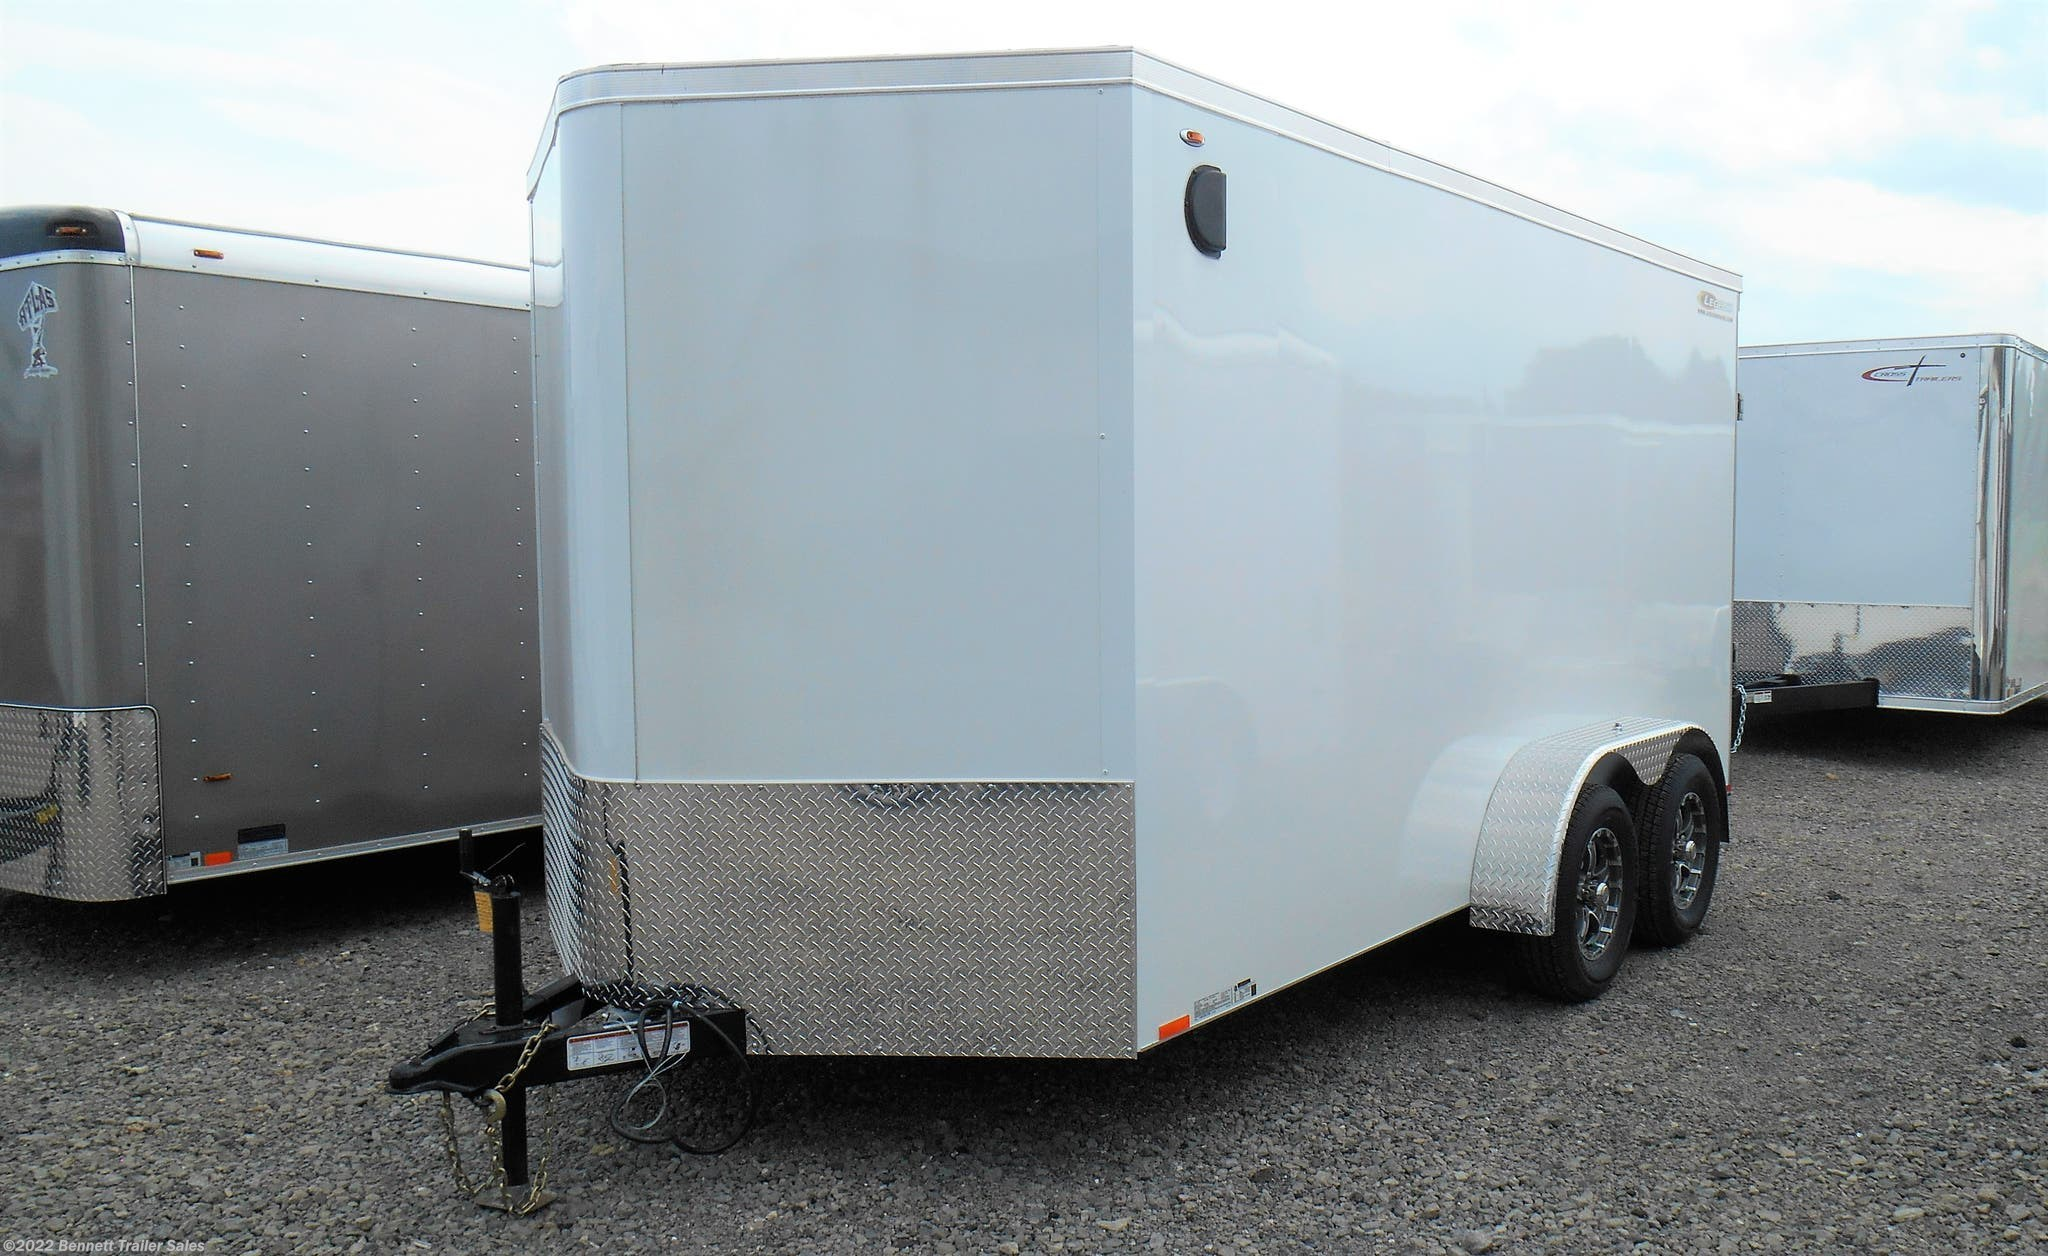 STOCK PHOTO - TRAILER WILL BE BLACK